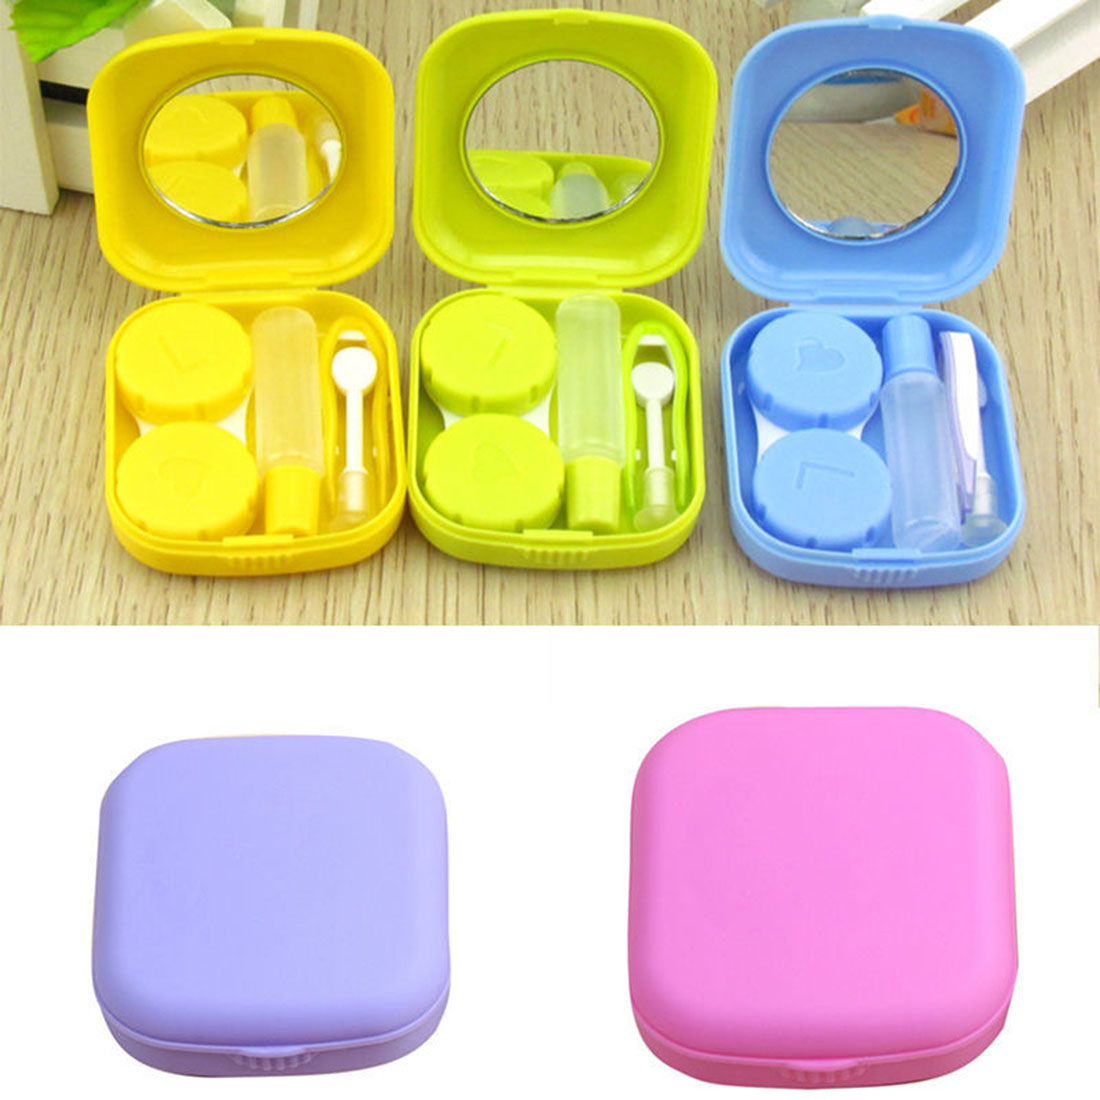 Cute Mini Contact Lens Case Travel Kit Mirror Container